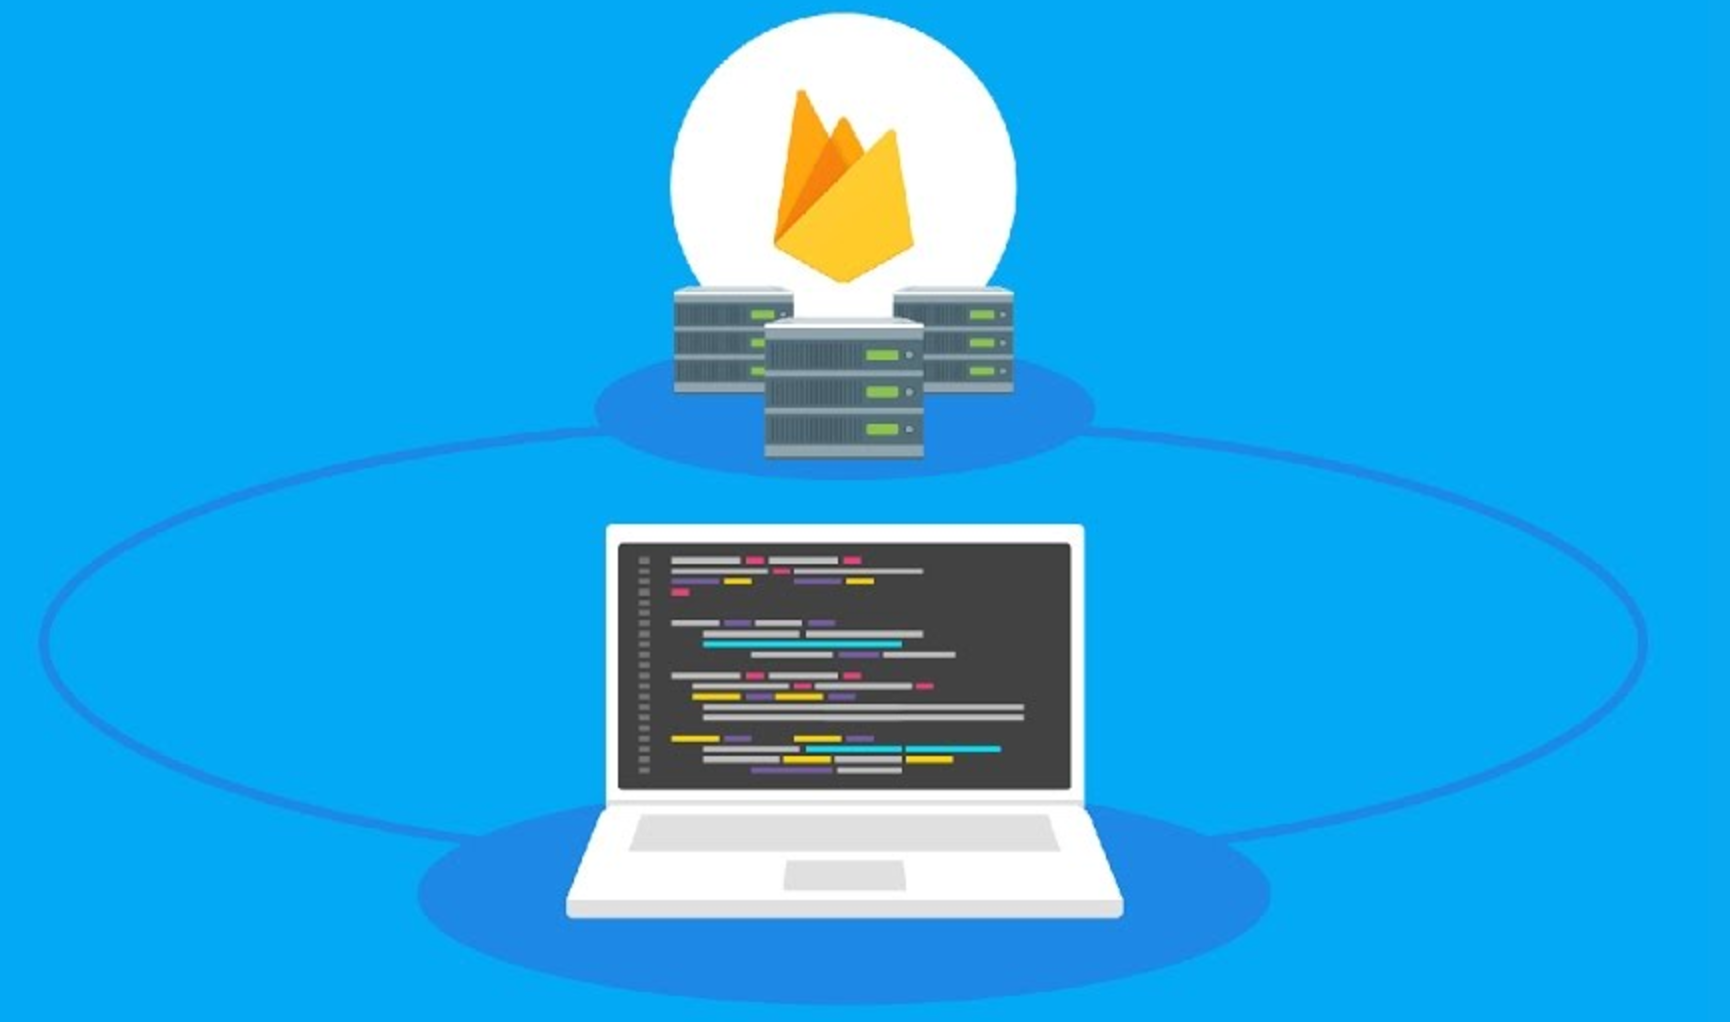 Getting started with Cloud Functions for Firebase